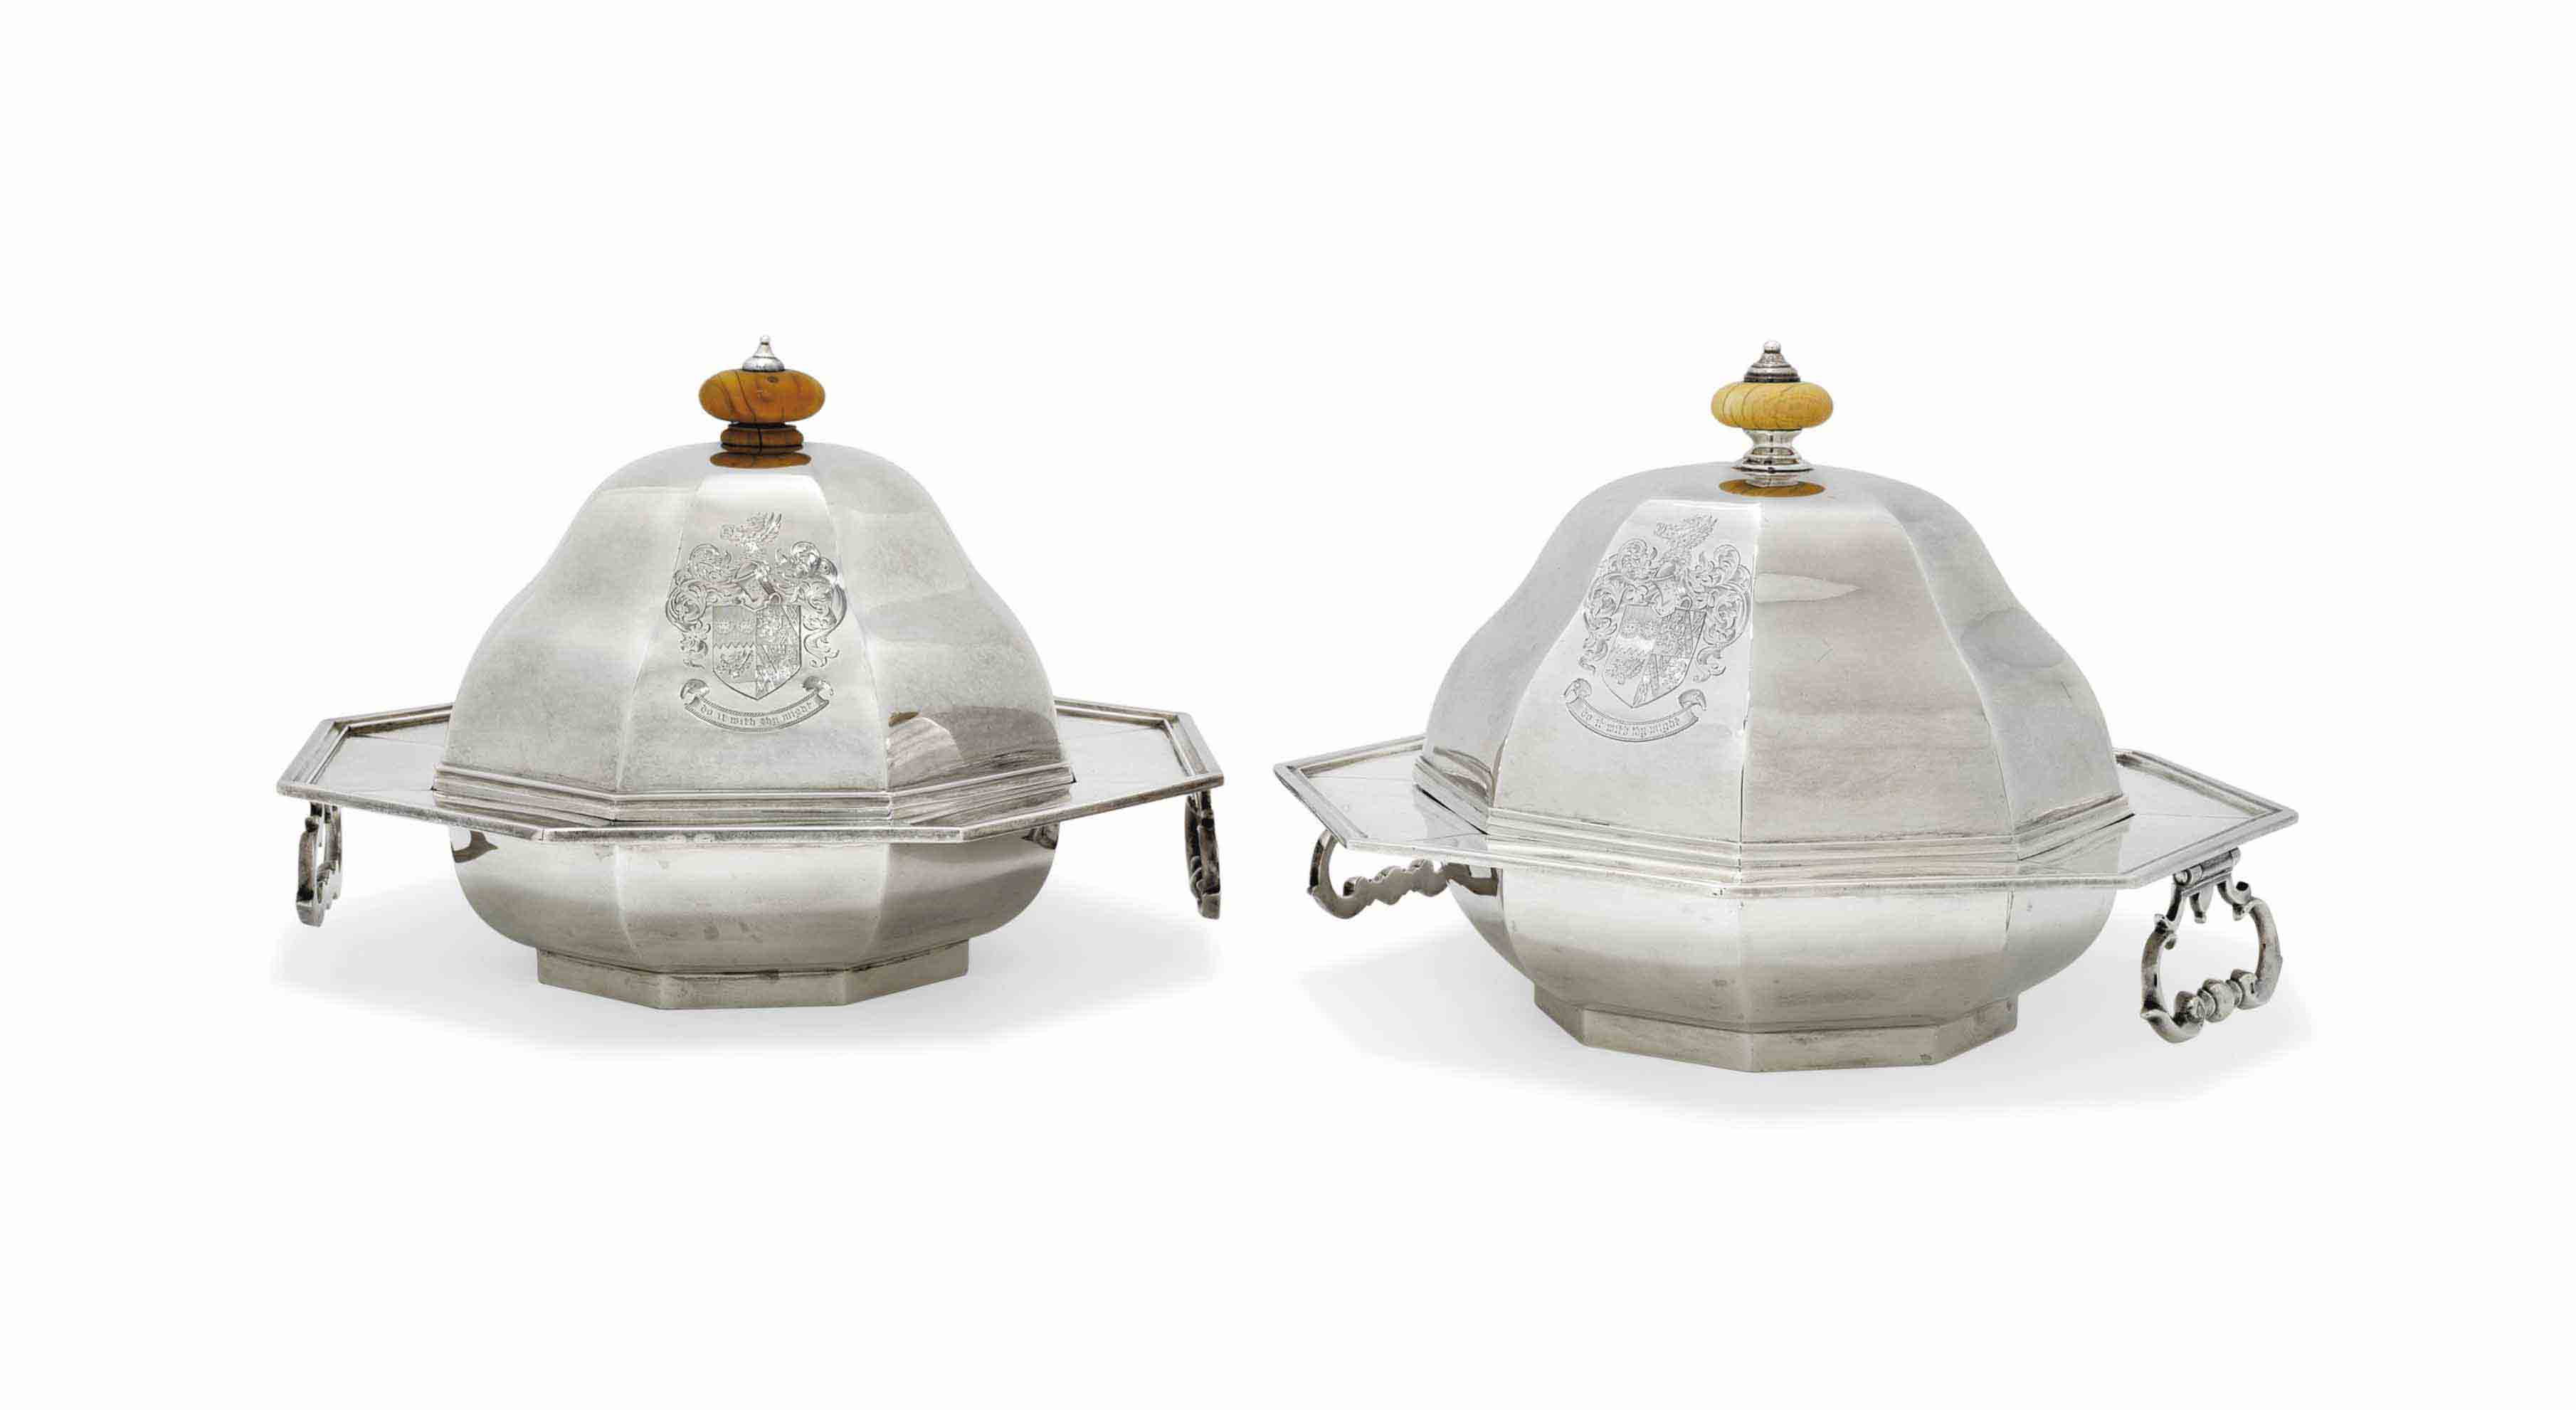 TWO EDWARD VII SILVER MUFFIN-DISHES AND COVERS